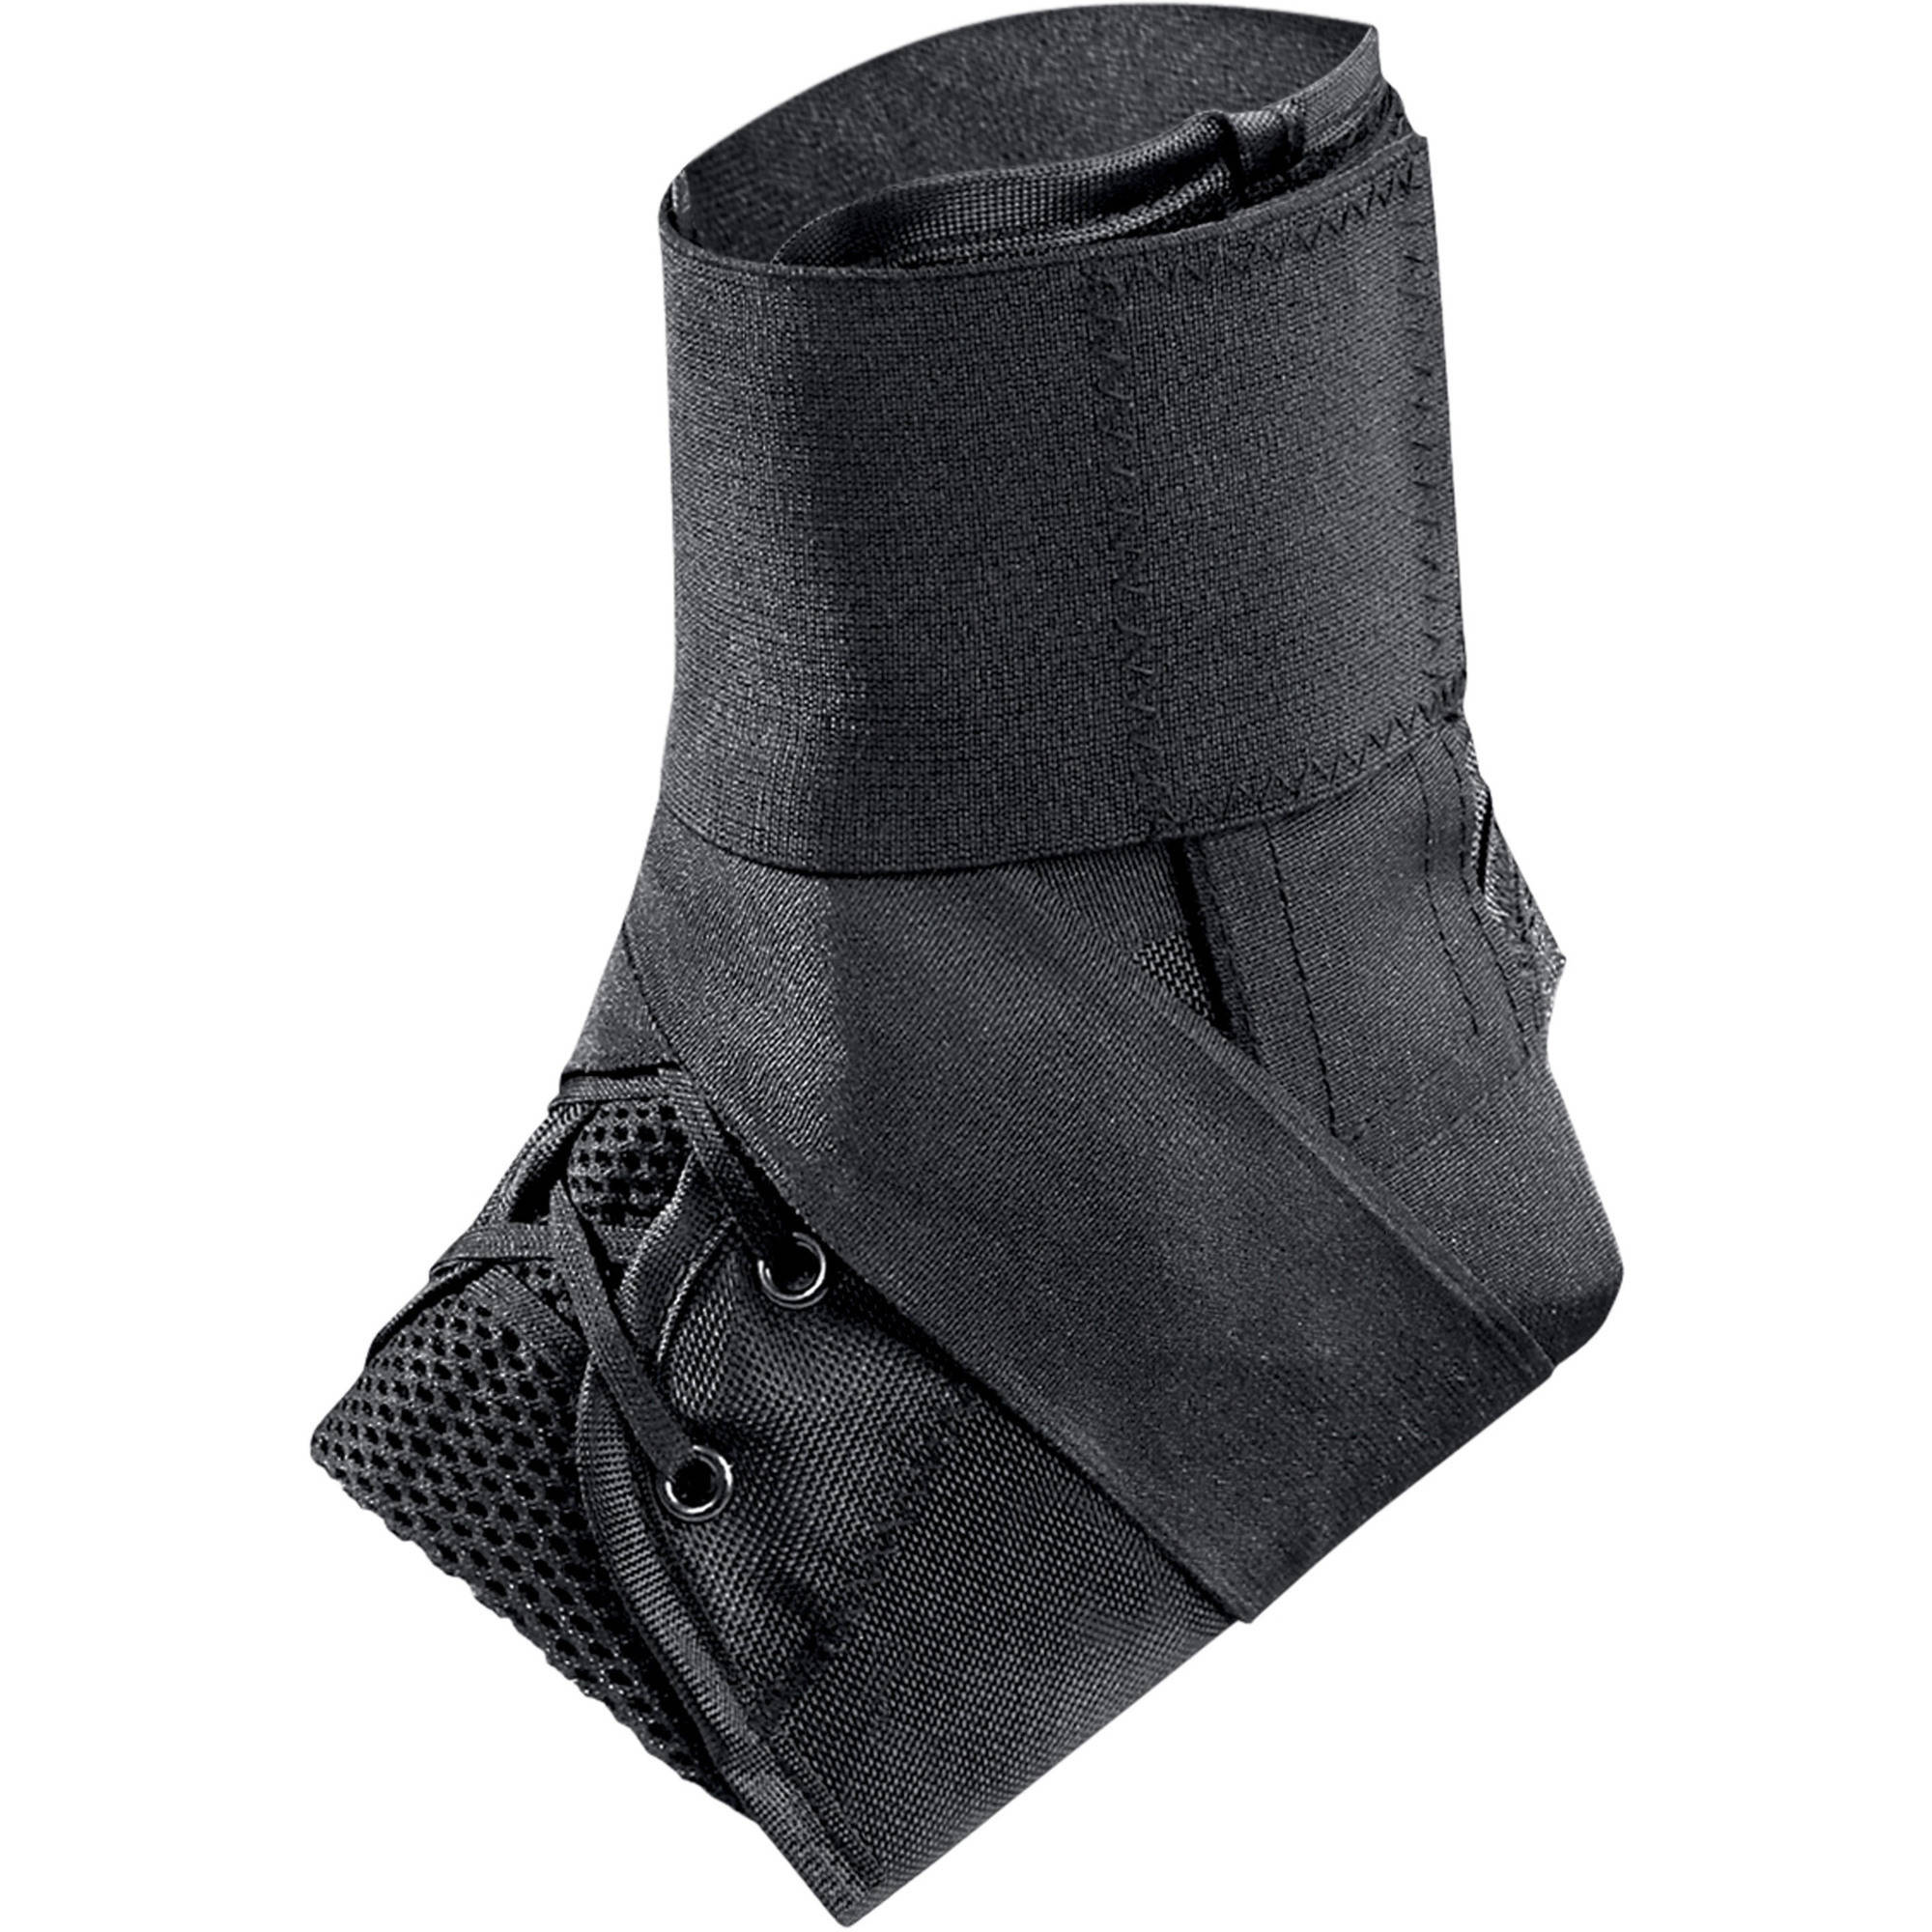 ACE Ultra-Lite Ankle Brace, Medium, 901014